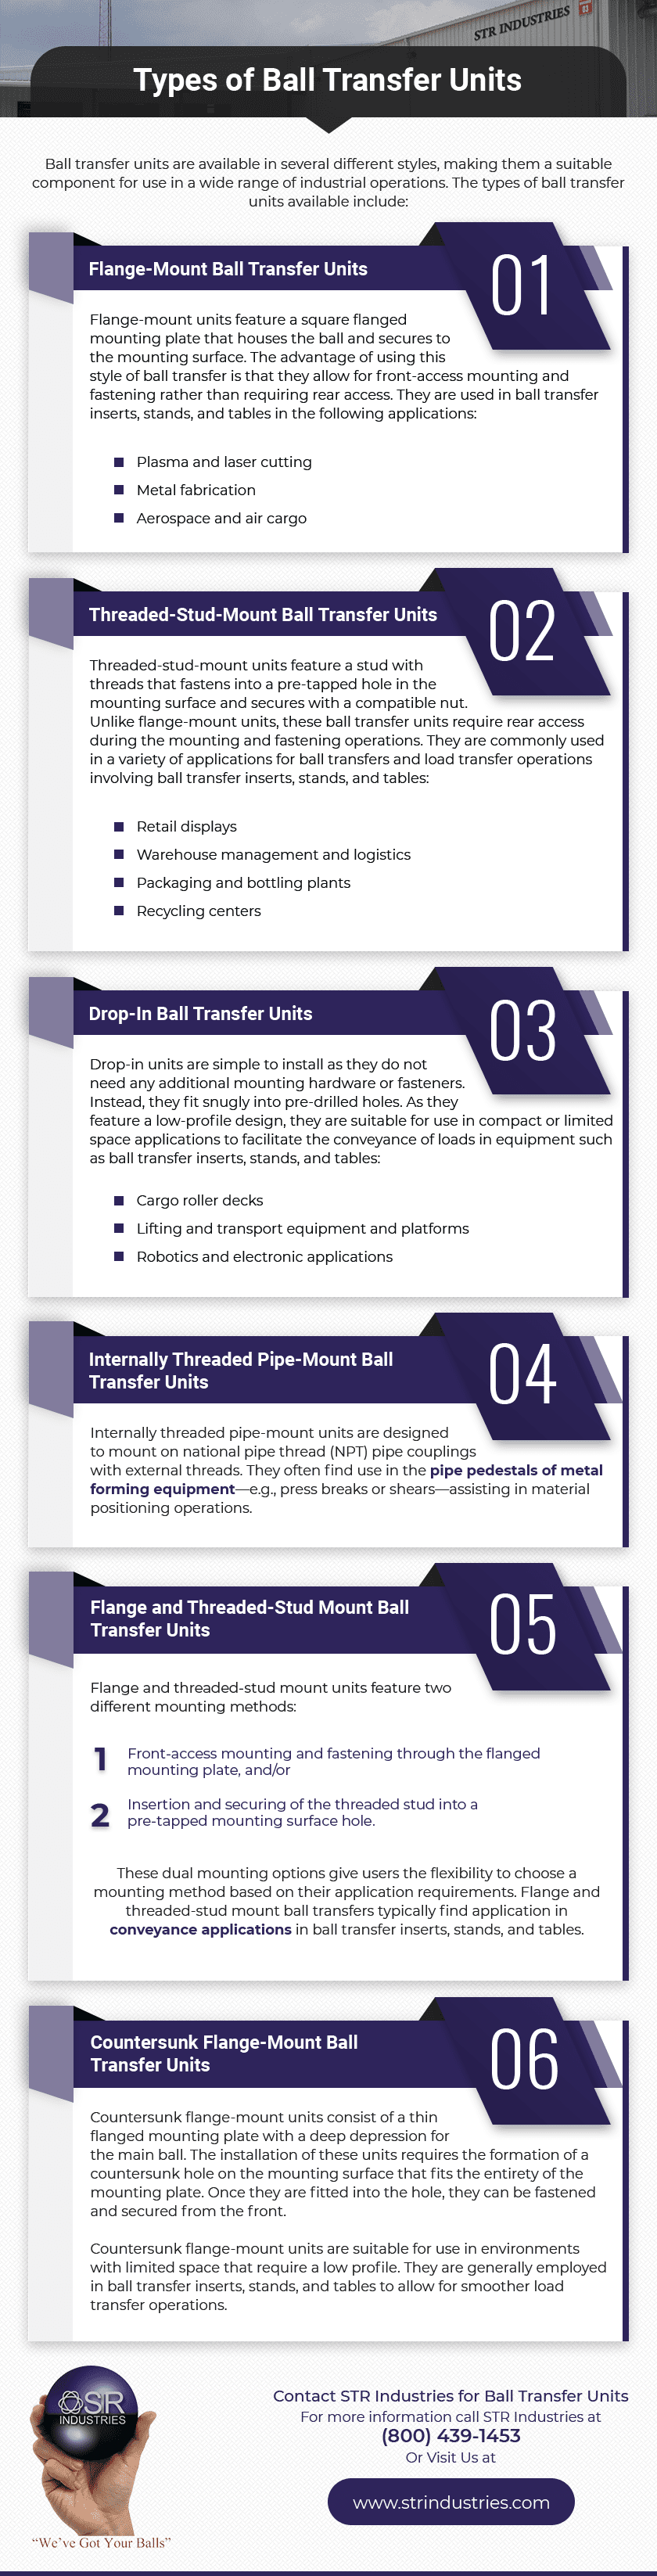 Types of ball transfer units infographic